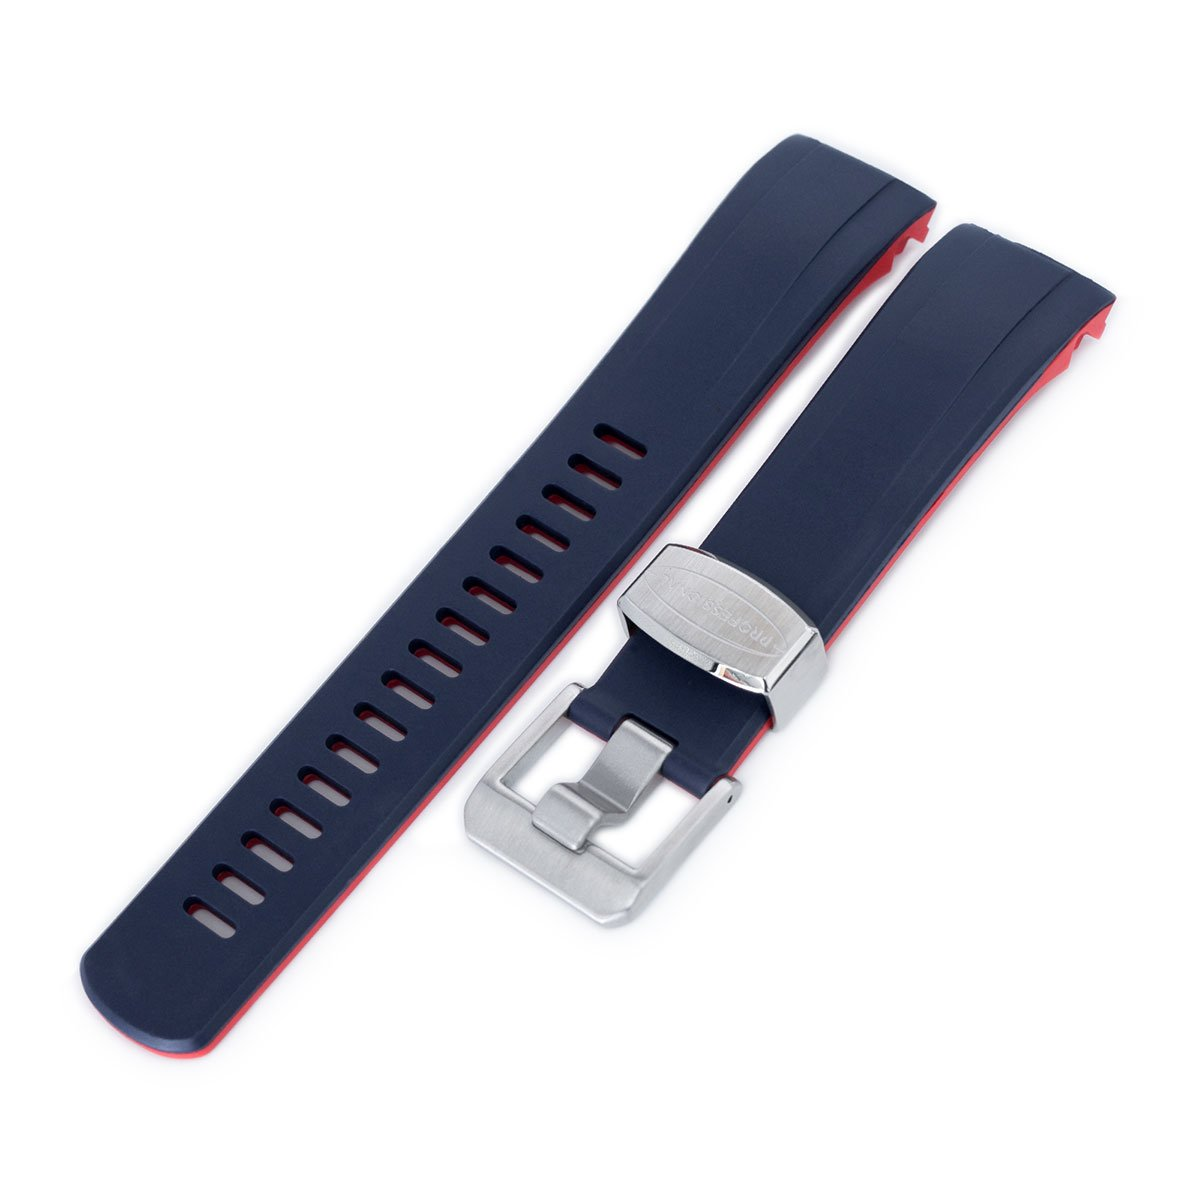 22mm Crafter Blue Dual Color Blue & Red Rubber Curved Lug Watch Strap for Seiko Samurai SRPB51 Strapcode Watch Bands